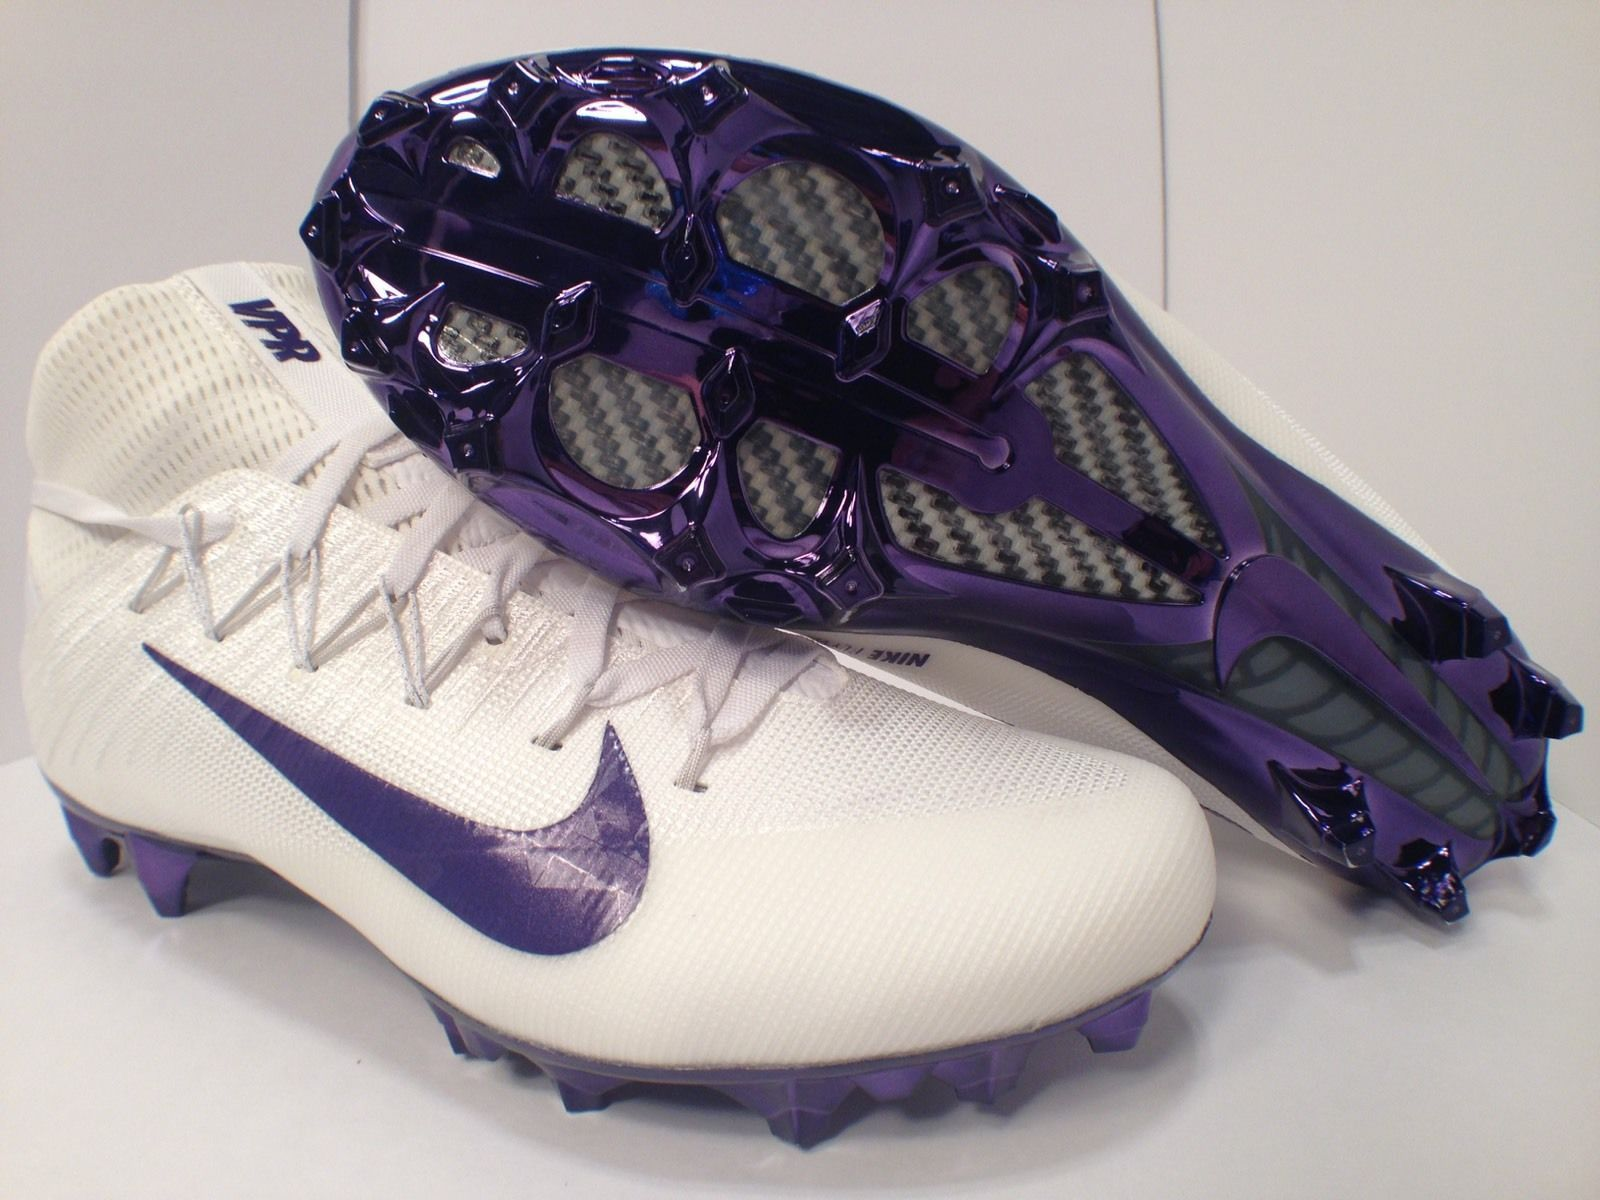 NIKE VAPOR UNTOUCHABLE 2 JEWELS FOOTBALL CLEATS SZ 11 WHITE PURPLE  555686664dccddfdfb8e09b602dc9197 360780620140307586. Nike Vapor One Leather  Official